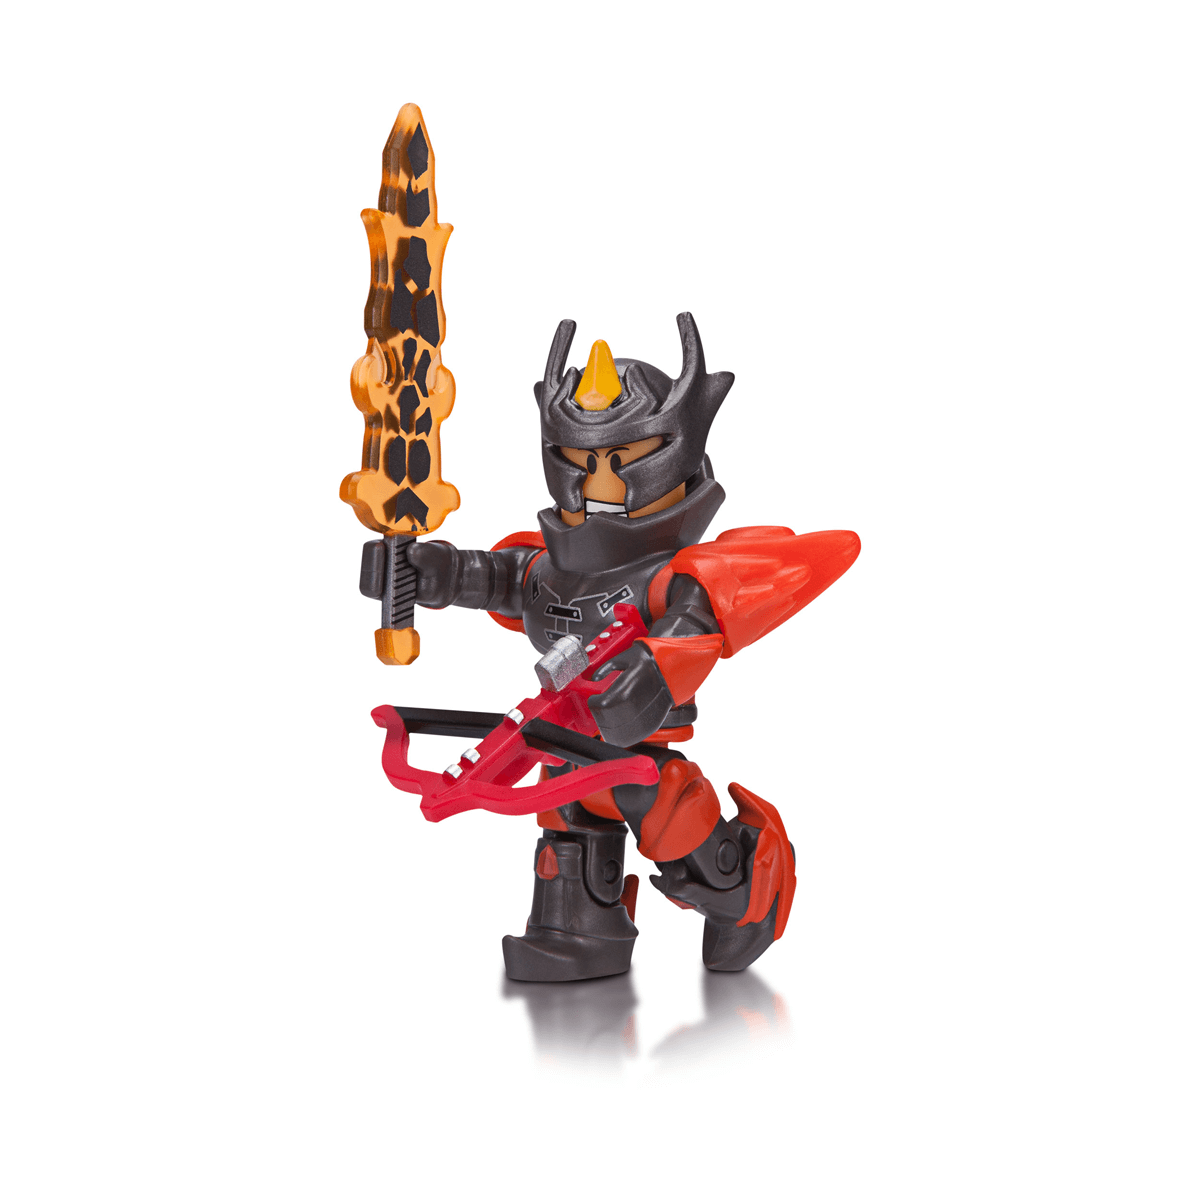 Roblox Fire Sword Id Roblox Flame Guard General Figure Pack The Entertainer